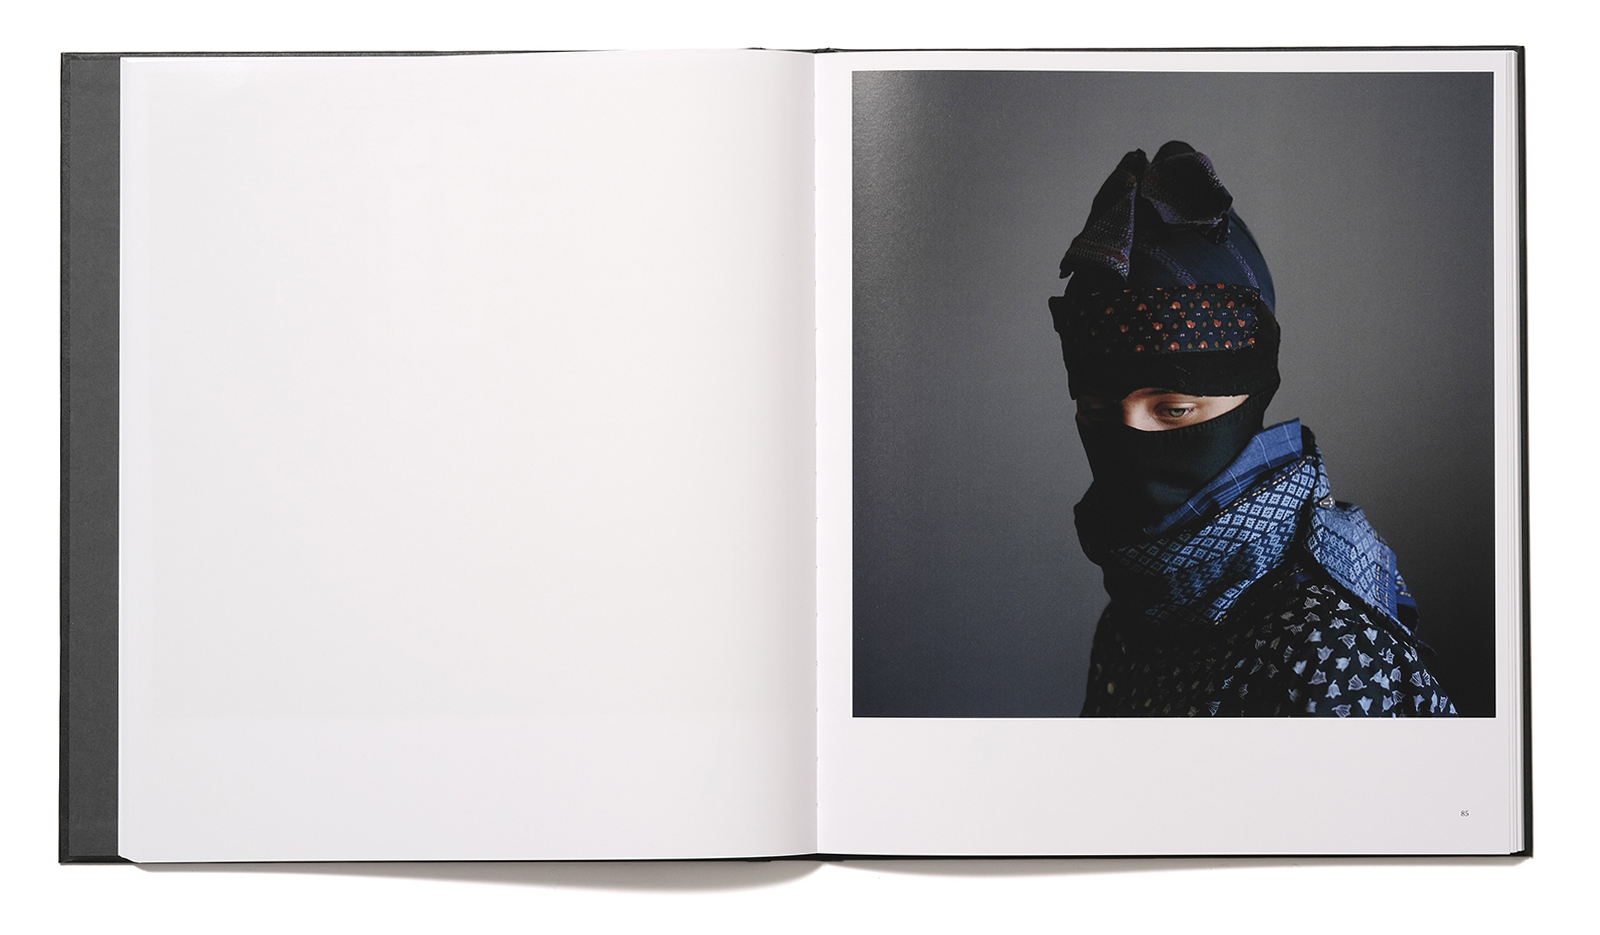 Spread from the book Stasis II by Trine Søndergaard showing a strude